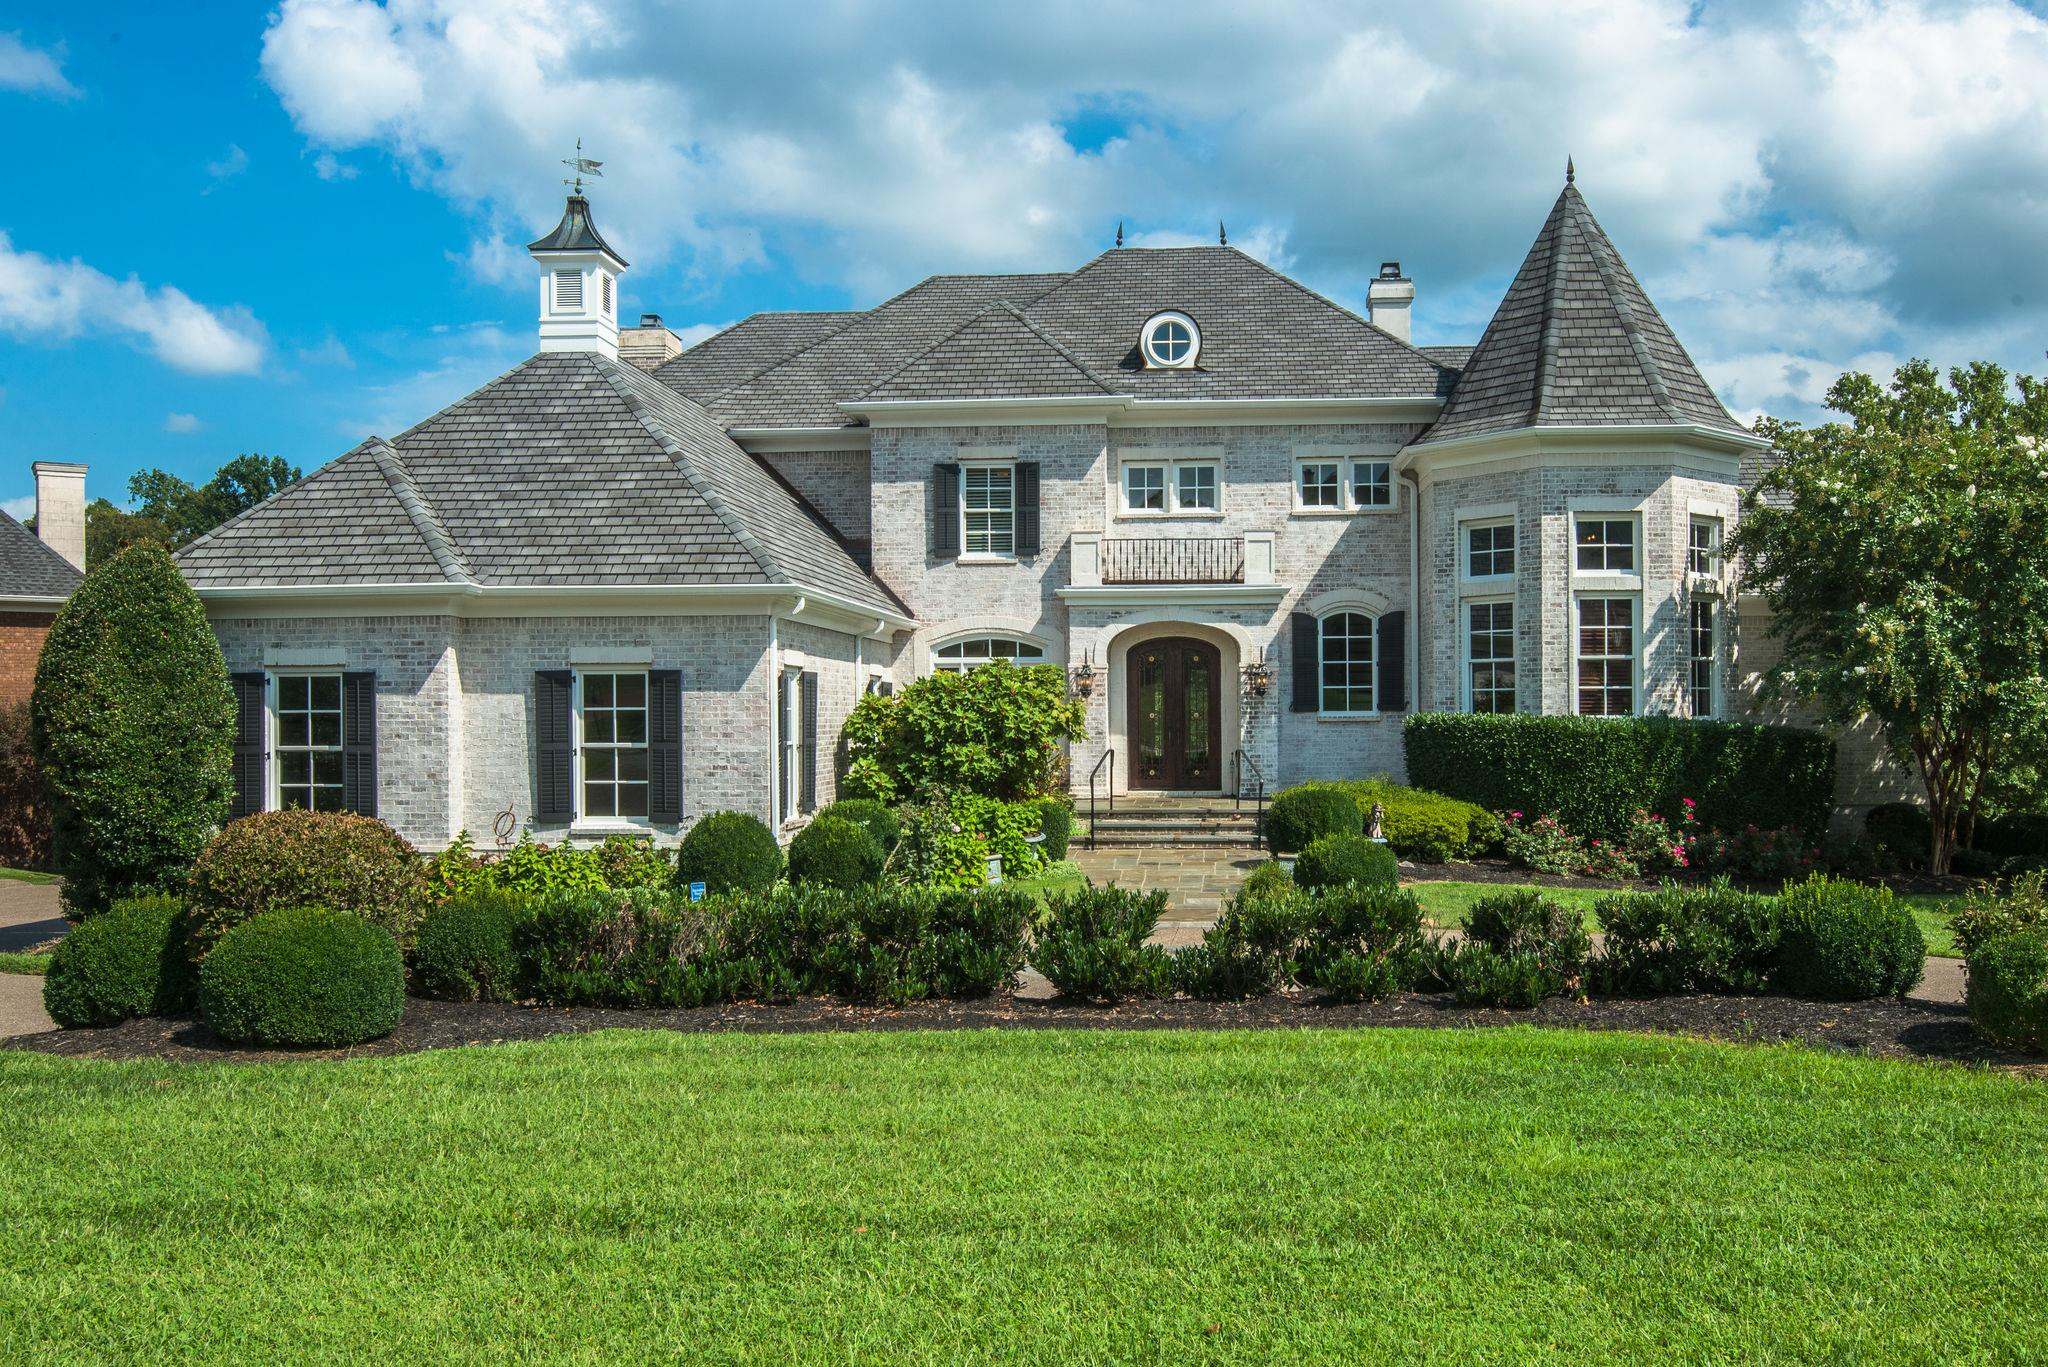 7 Oxmoor Ct, Brentwood, TN 37027 - Brentwood, TN real estate listing